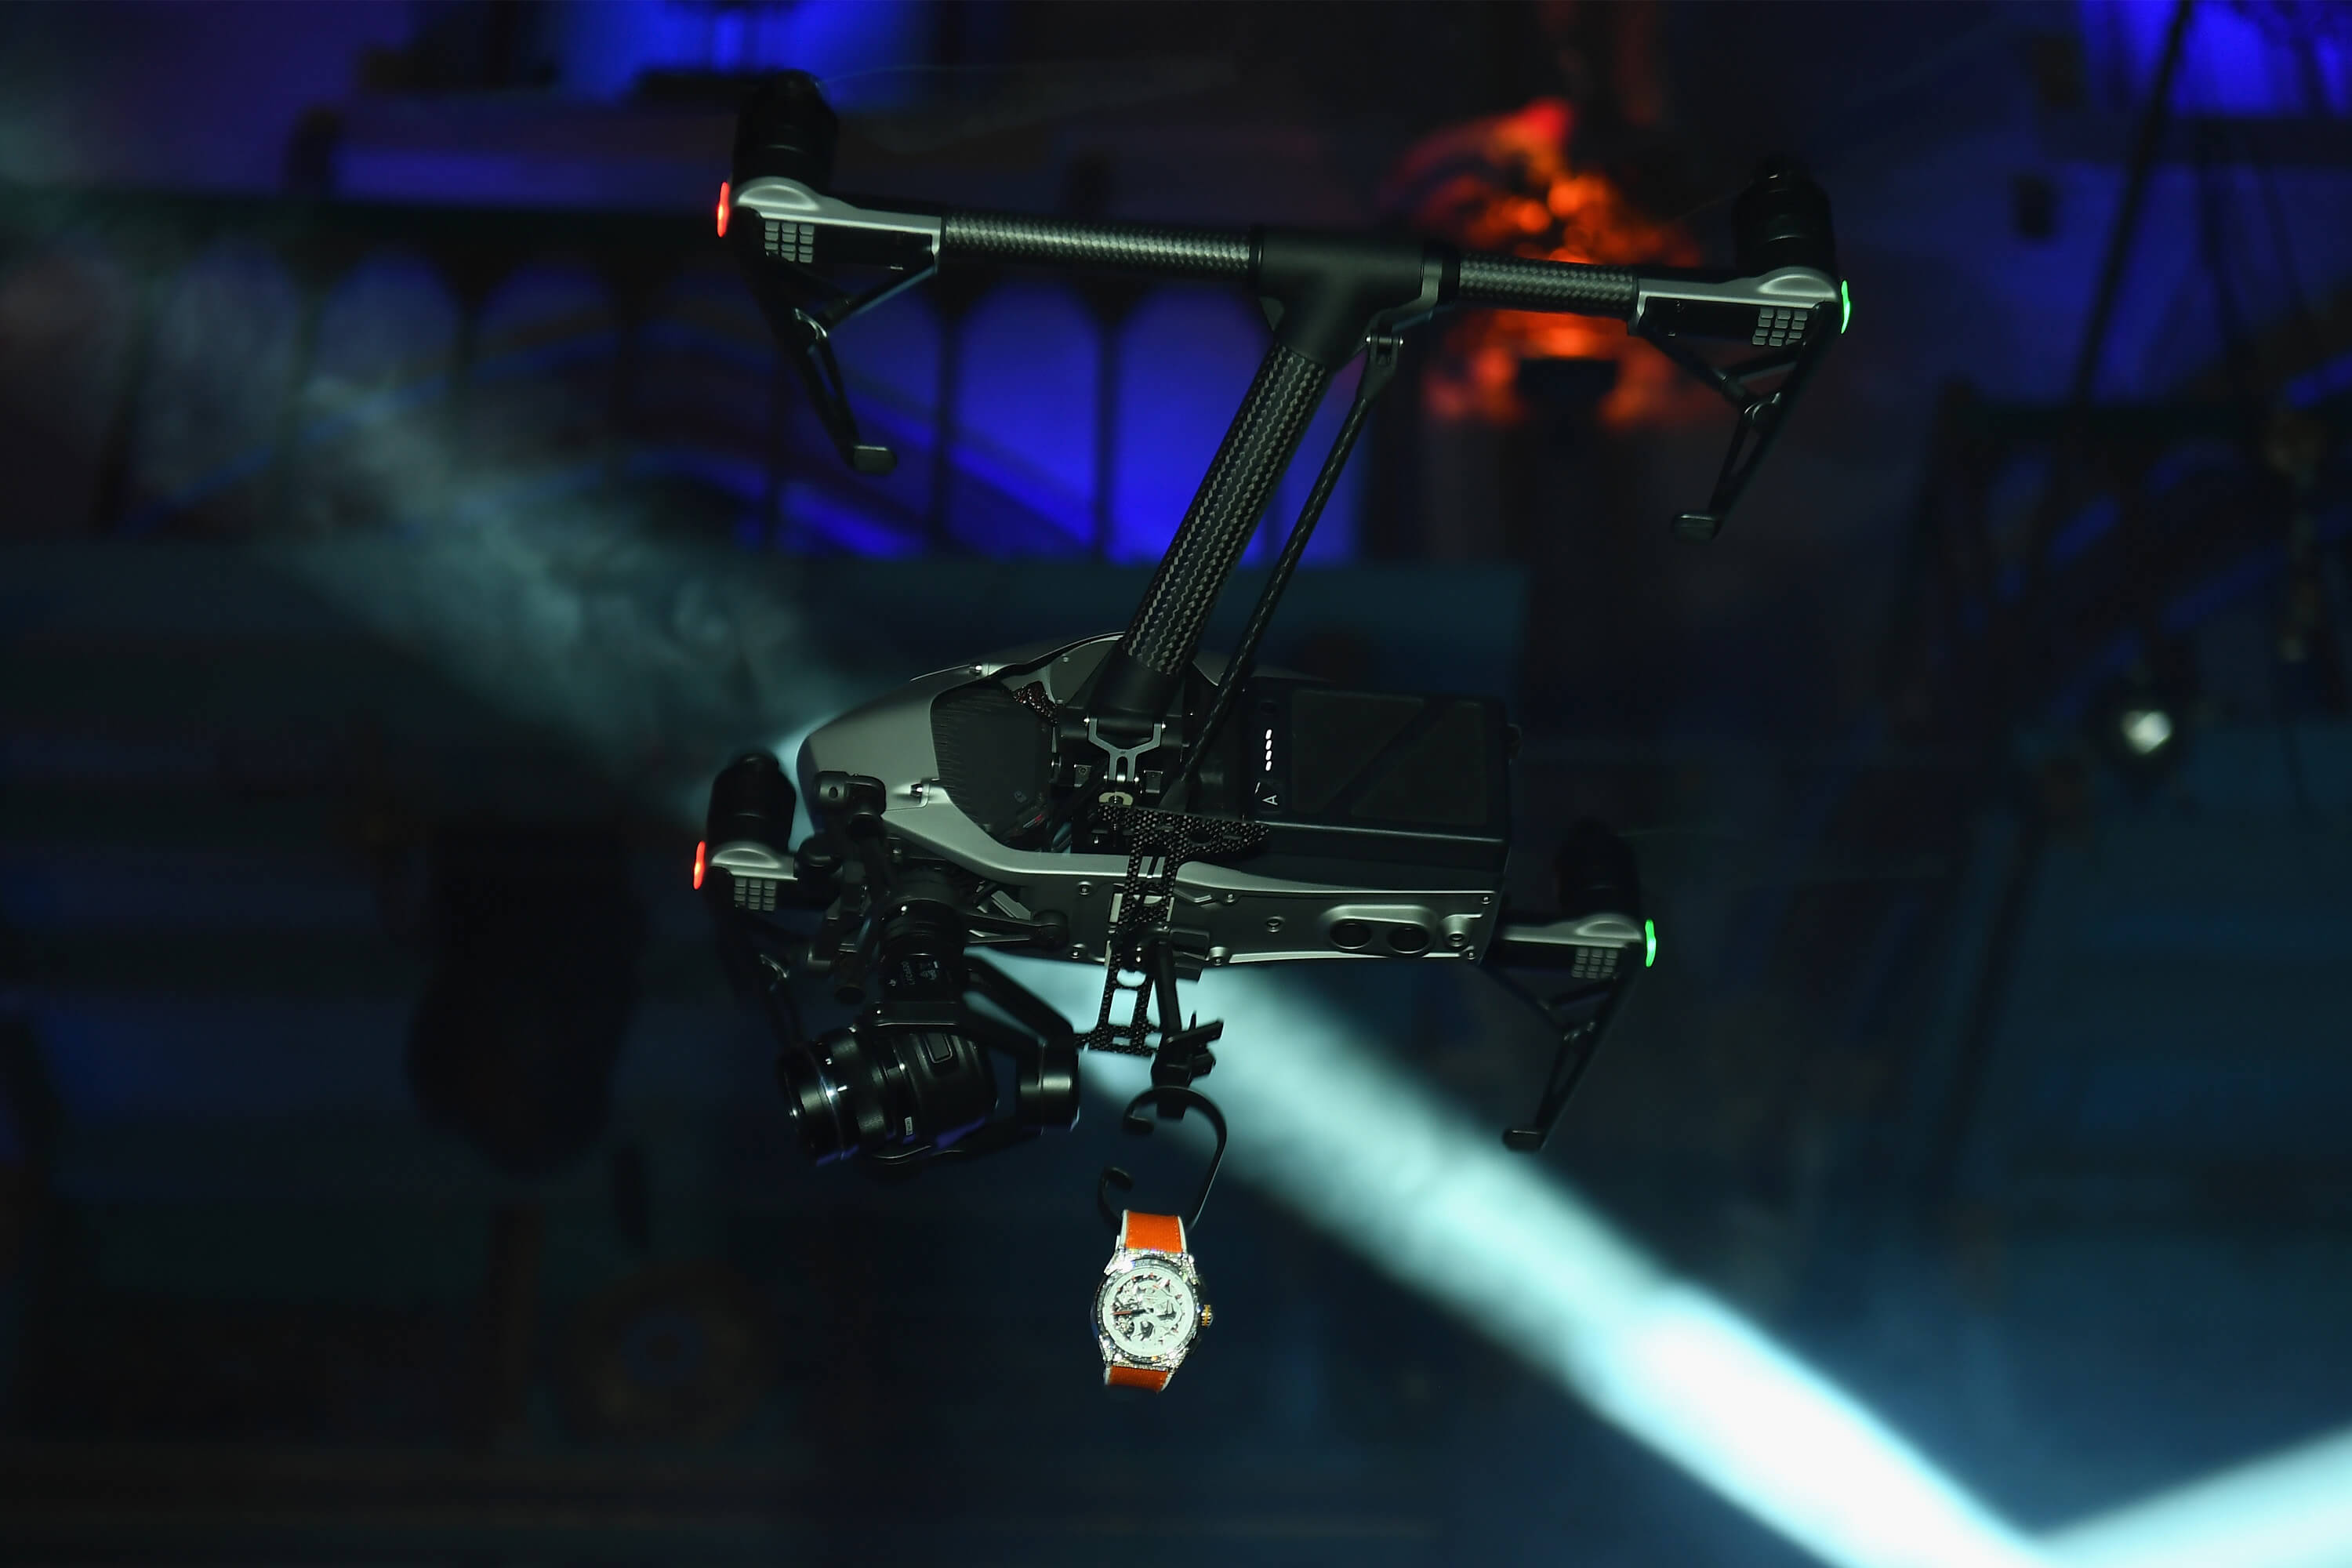 ZENITH - Drone and Watch - Getty Images